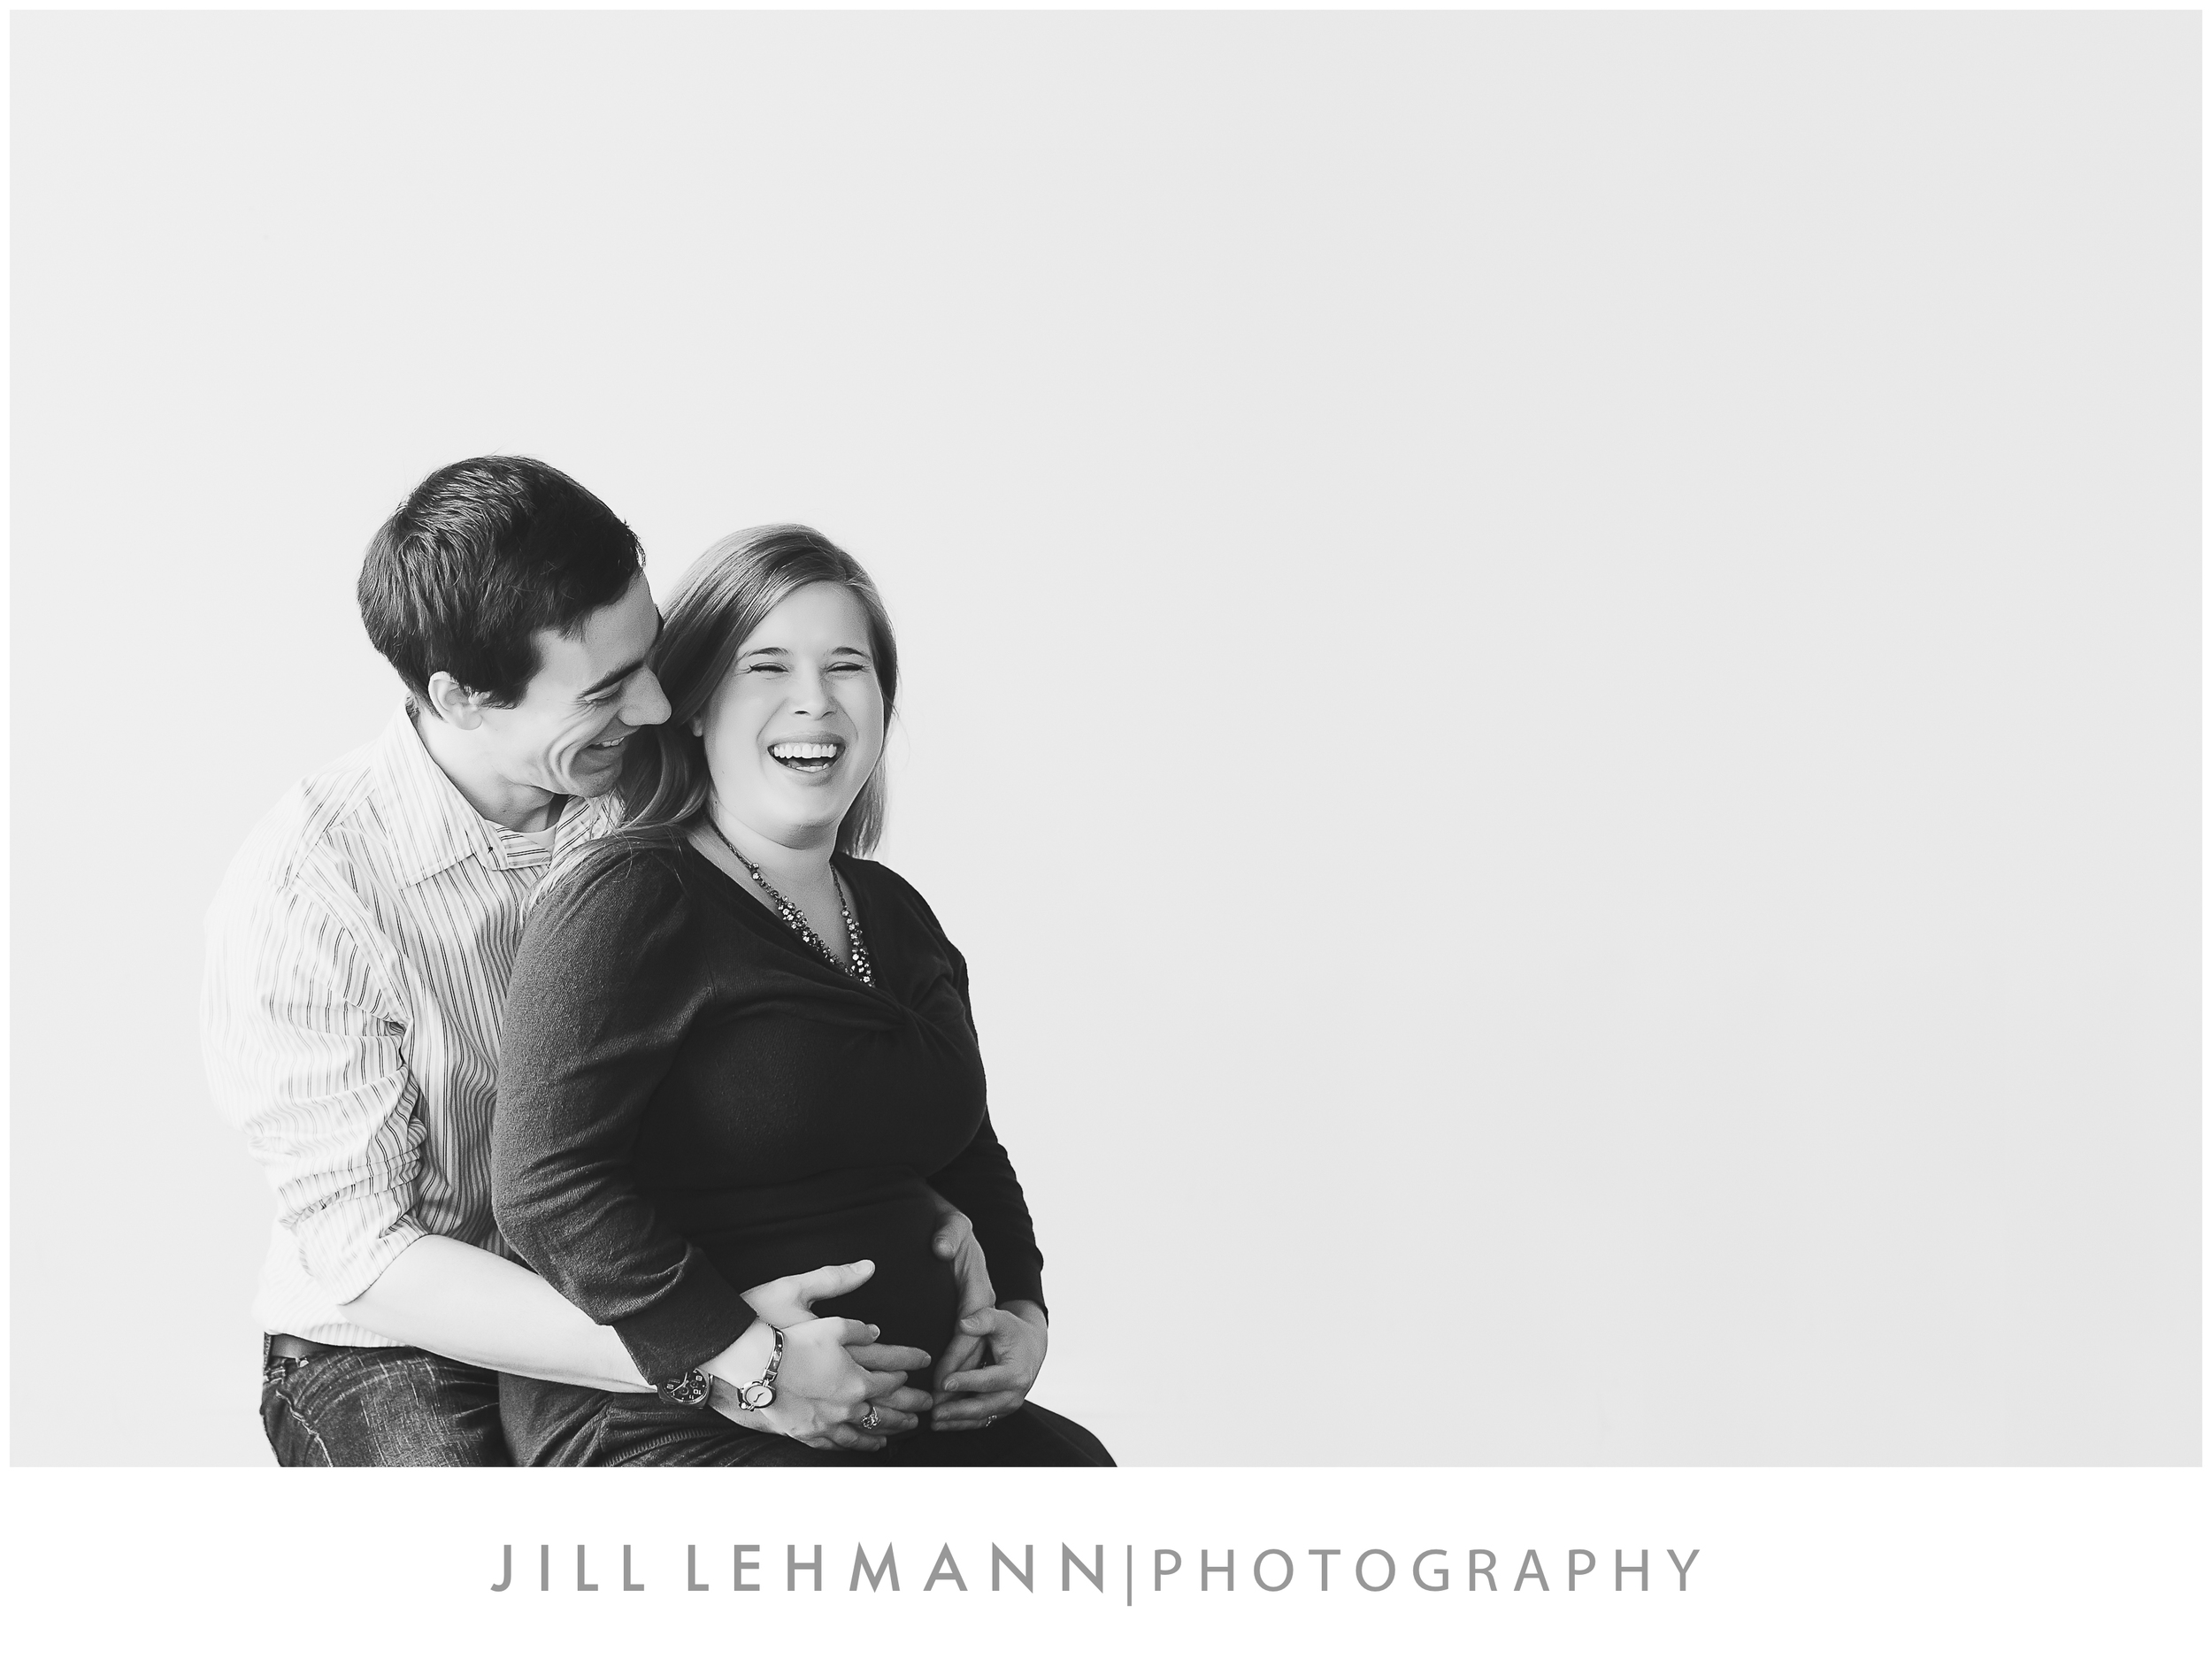 Maternity Photography - Jill Lehmann